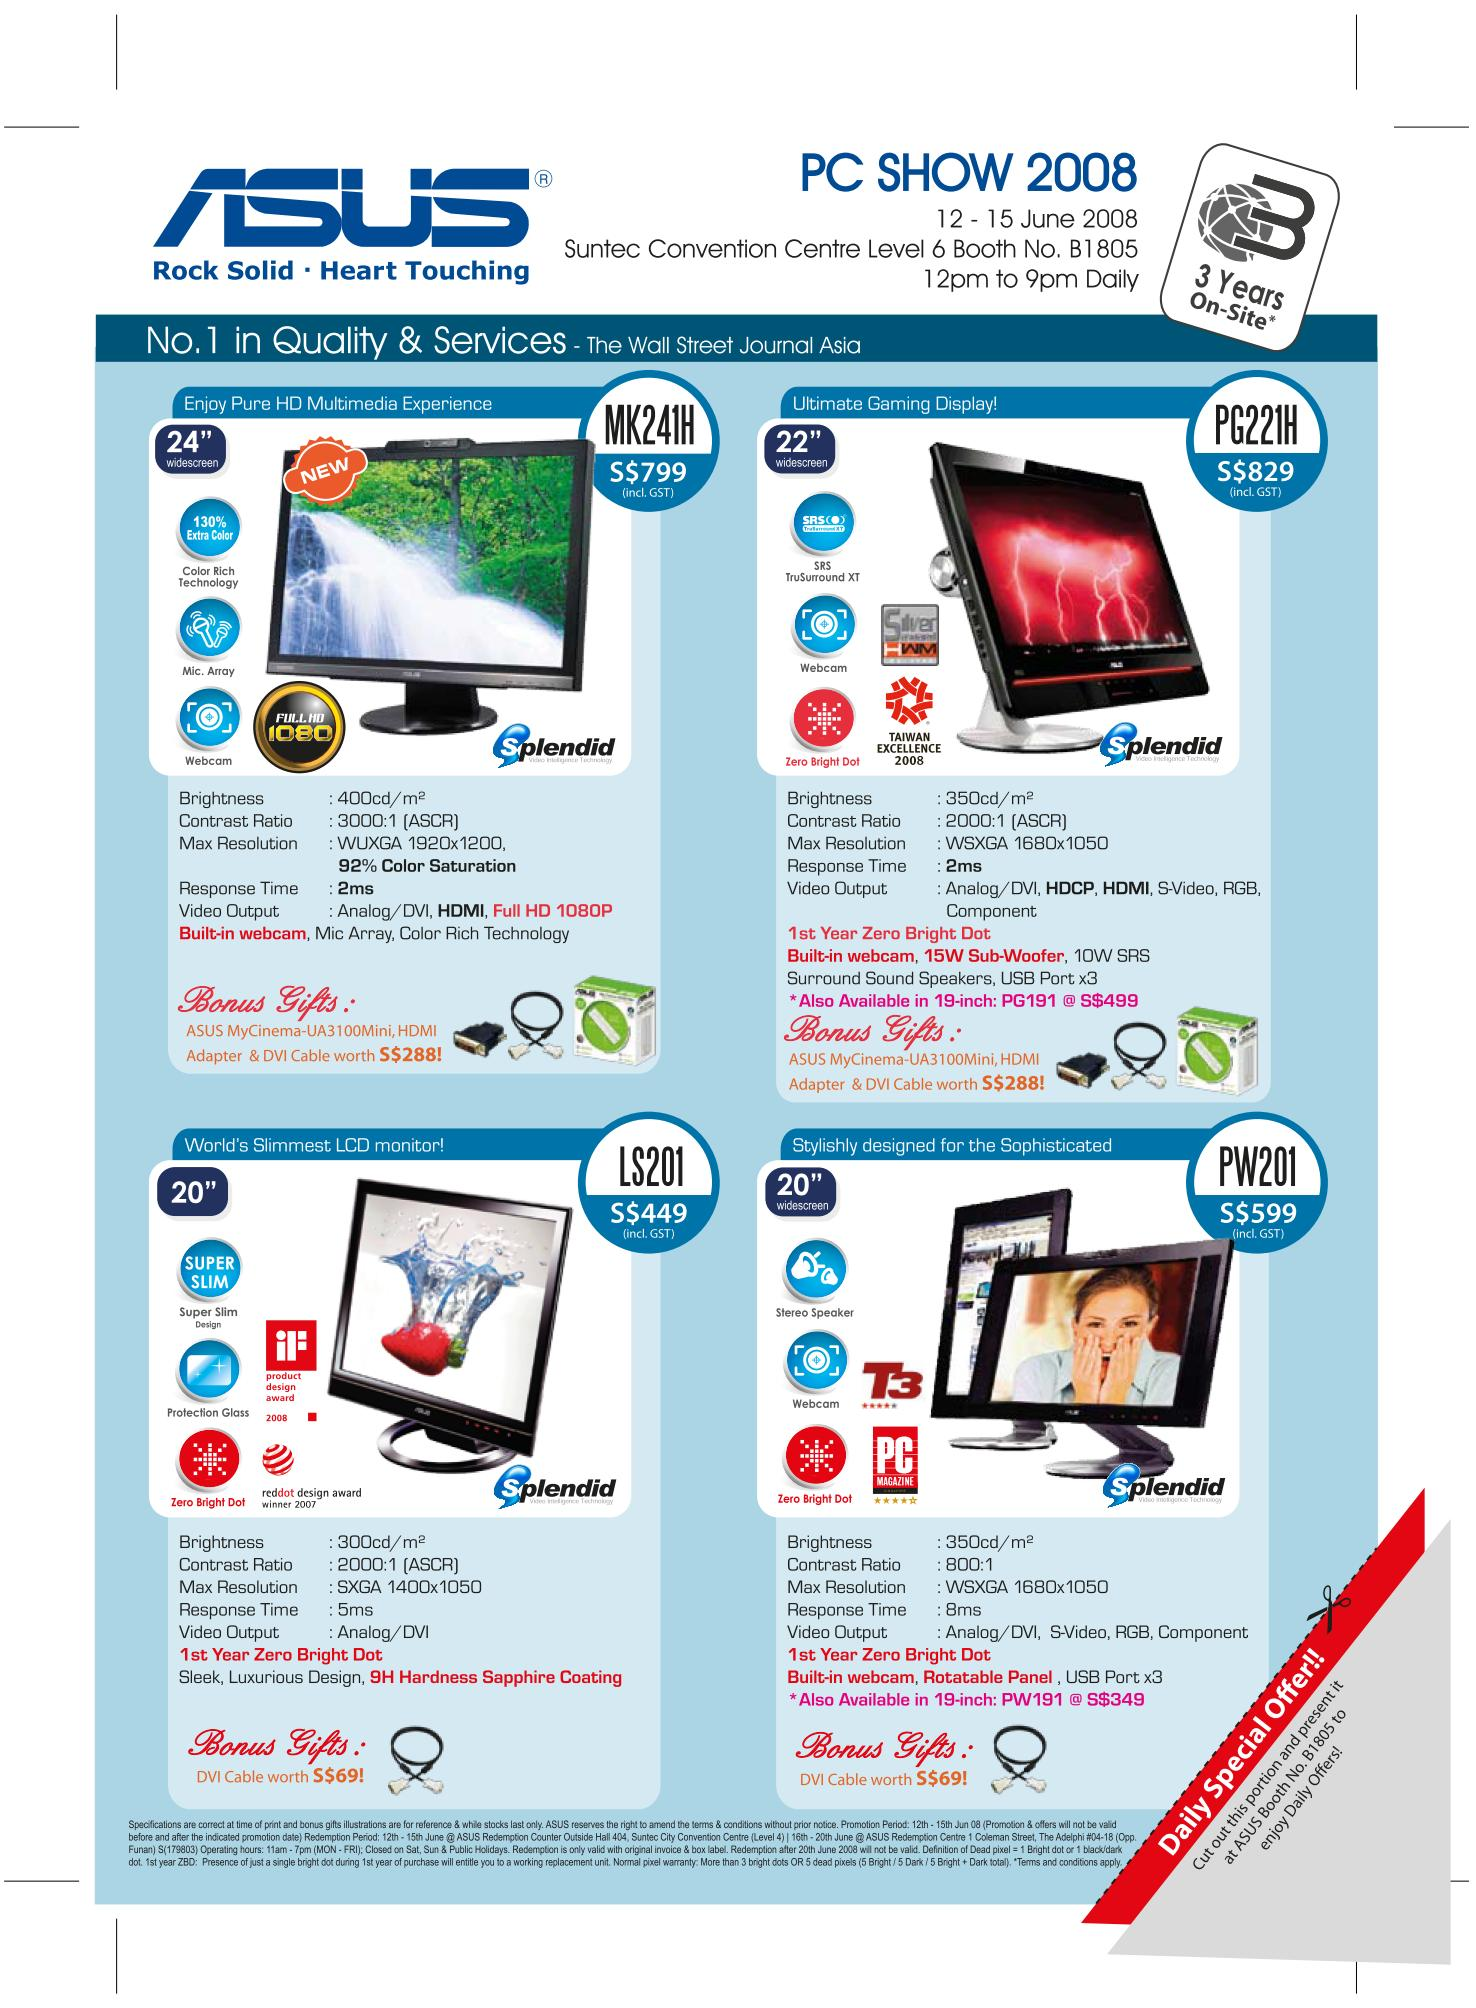 PC Show 2008 price list image brochure of Asus Lcd Back.pdf 01